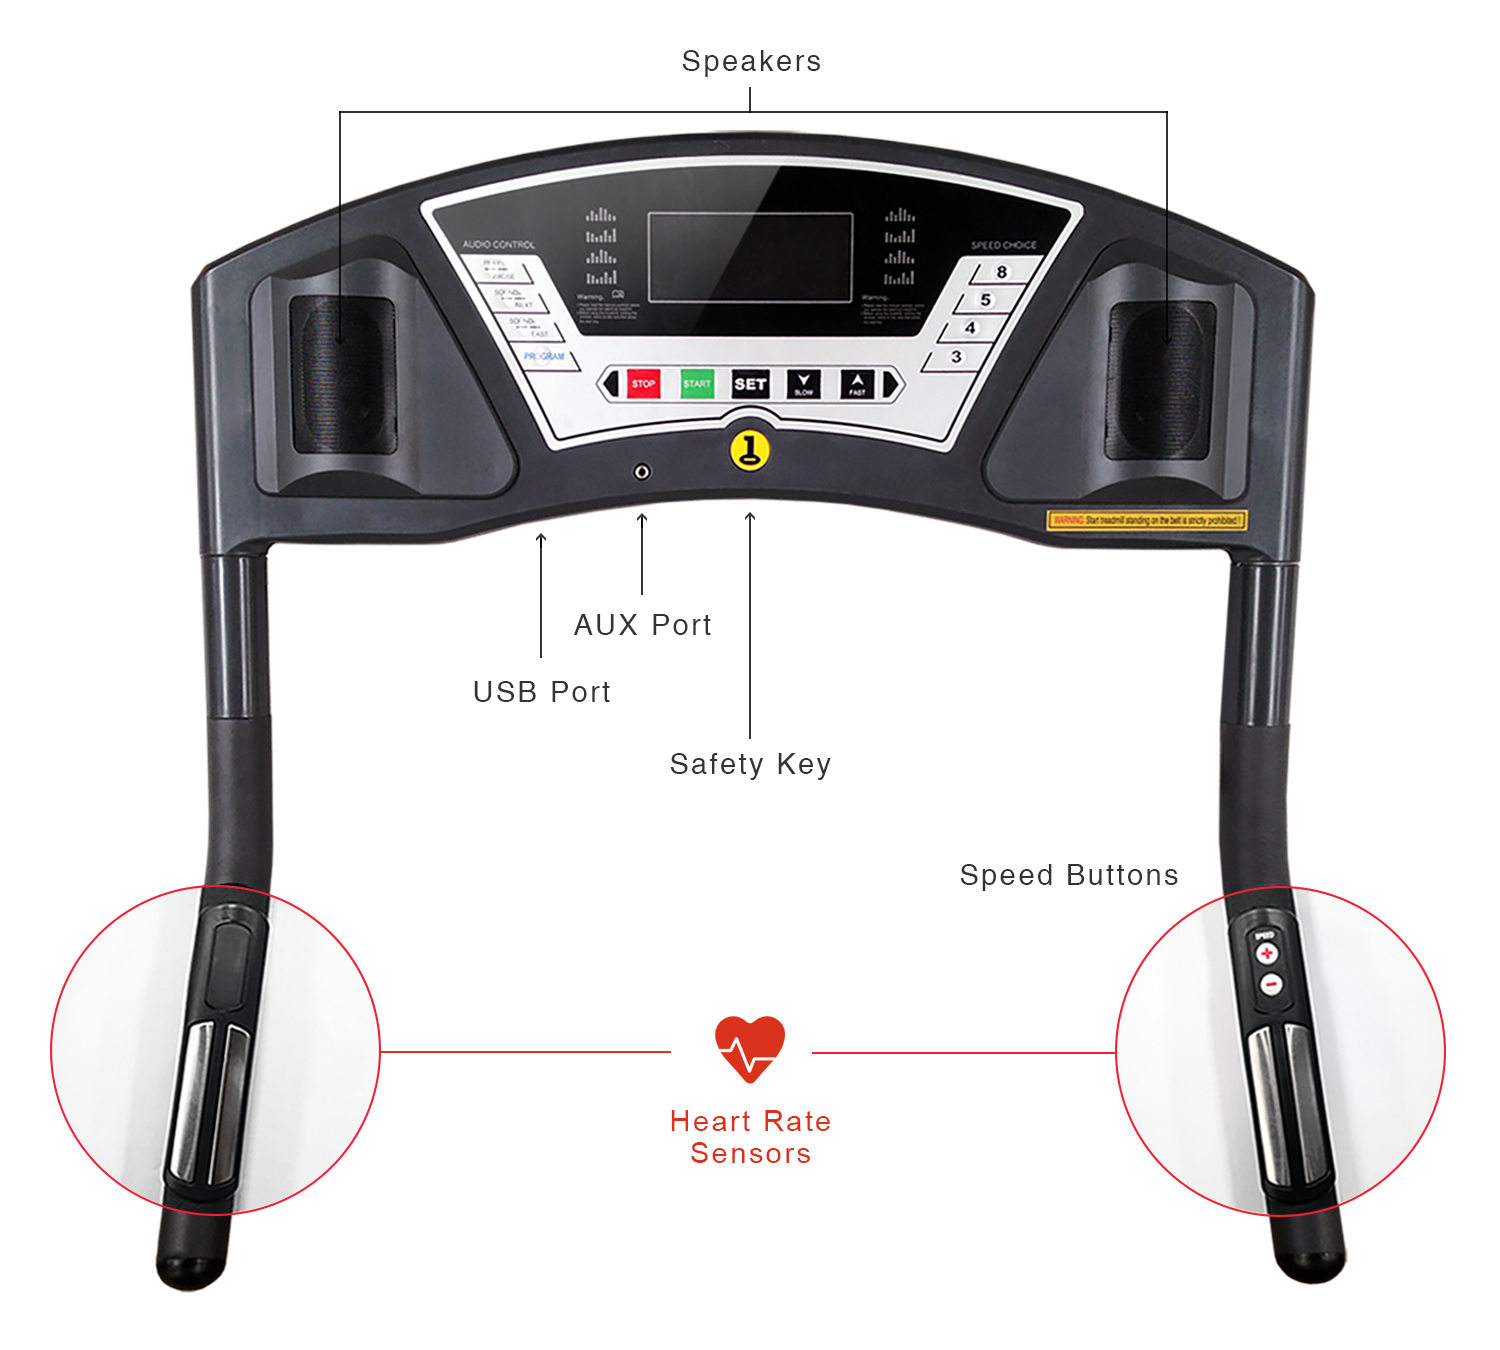 The D100 monitor features: speakers, AUX Port, USB Port, Safety Key tray and Heart Rate Sensors with Speed buttons